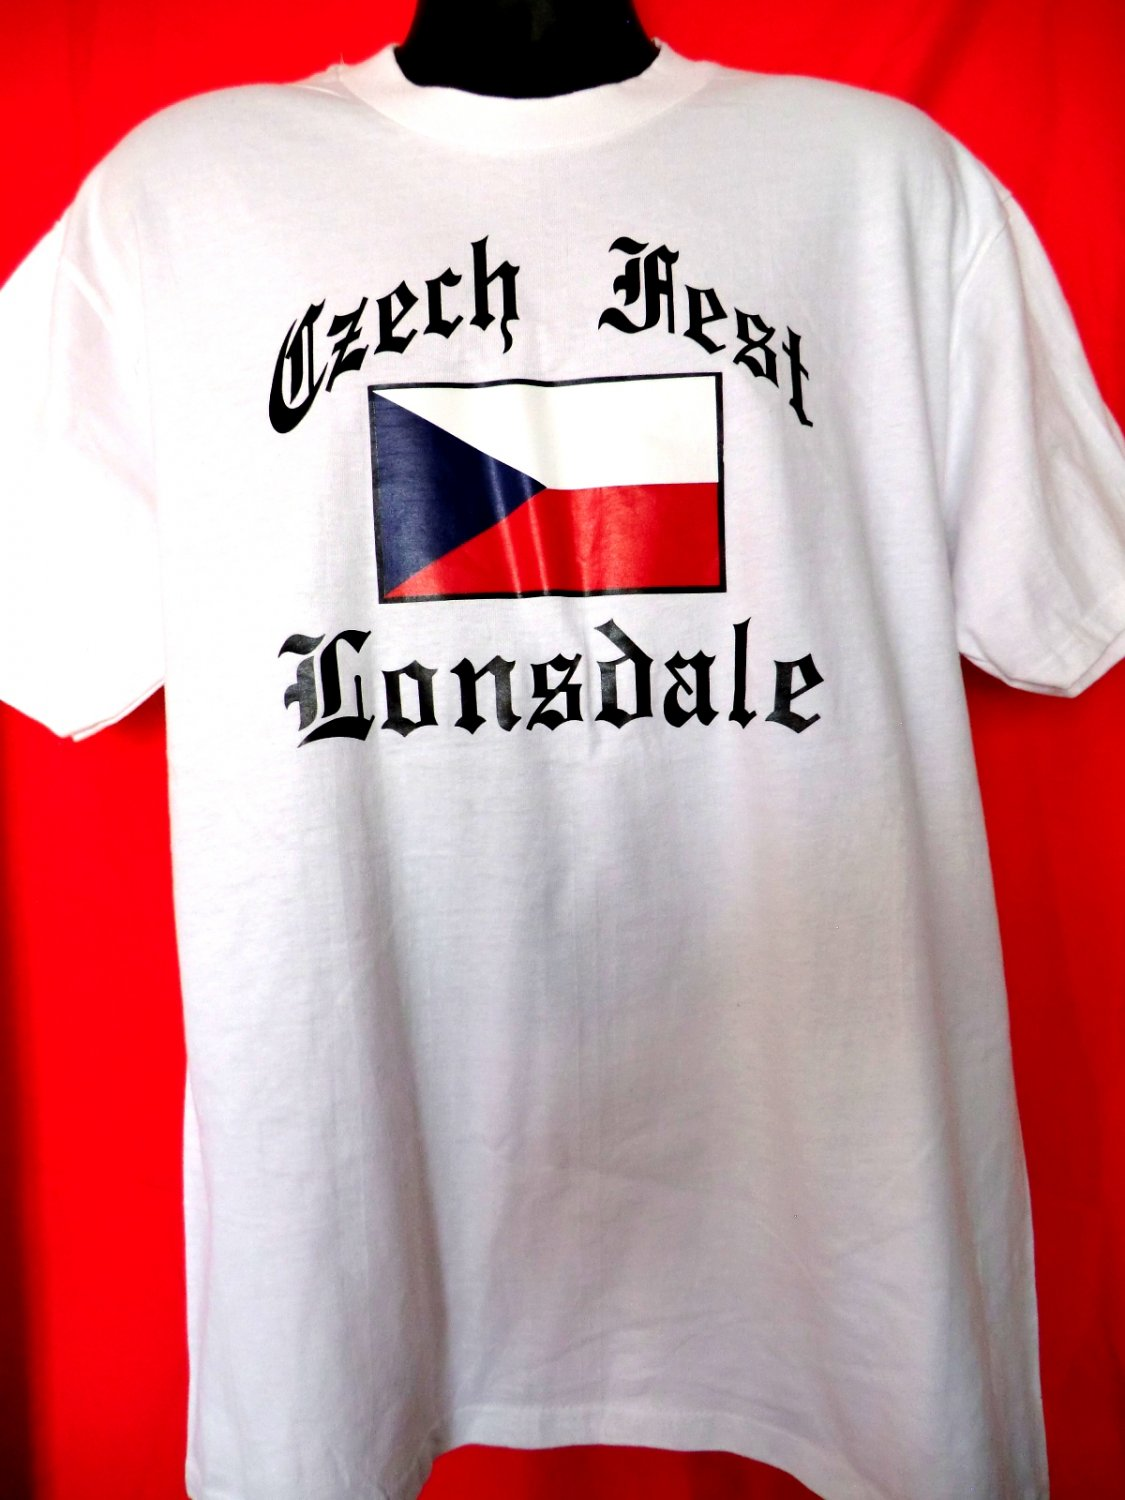 czech fest lonsdale t shirt size large xl. Black Bedroom Furniture Sets. Home Design Ideas